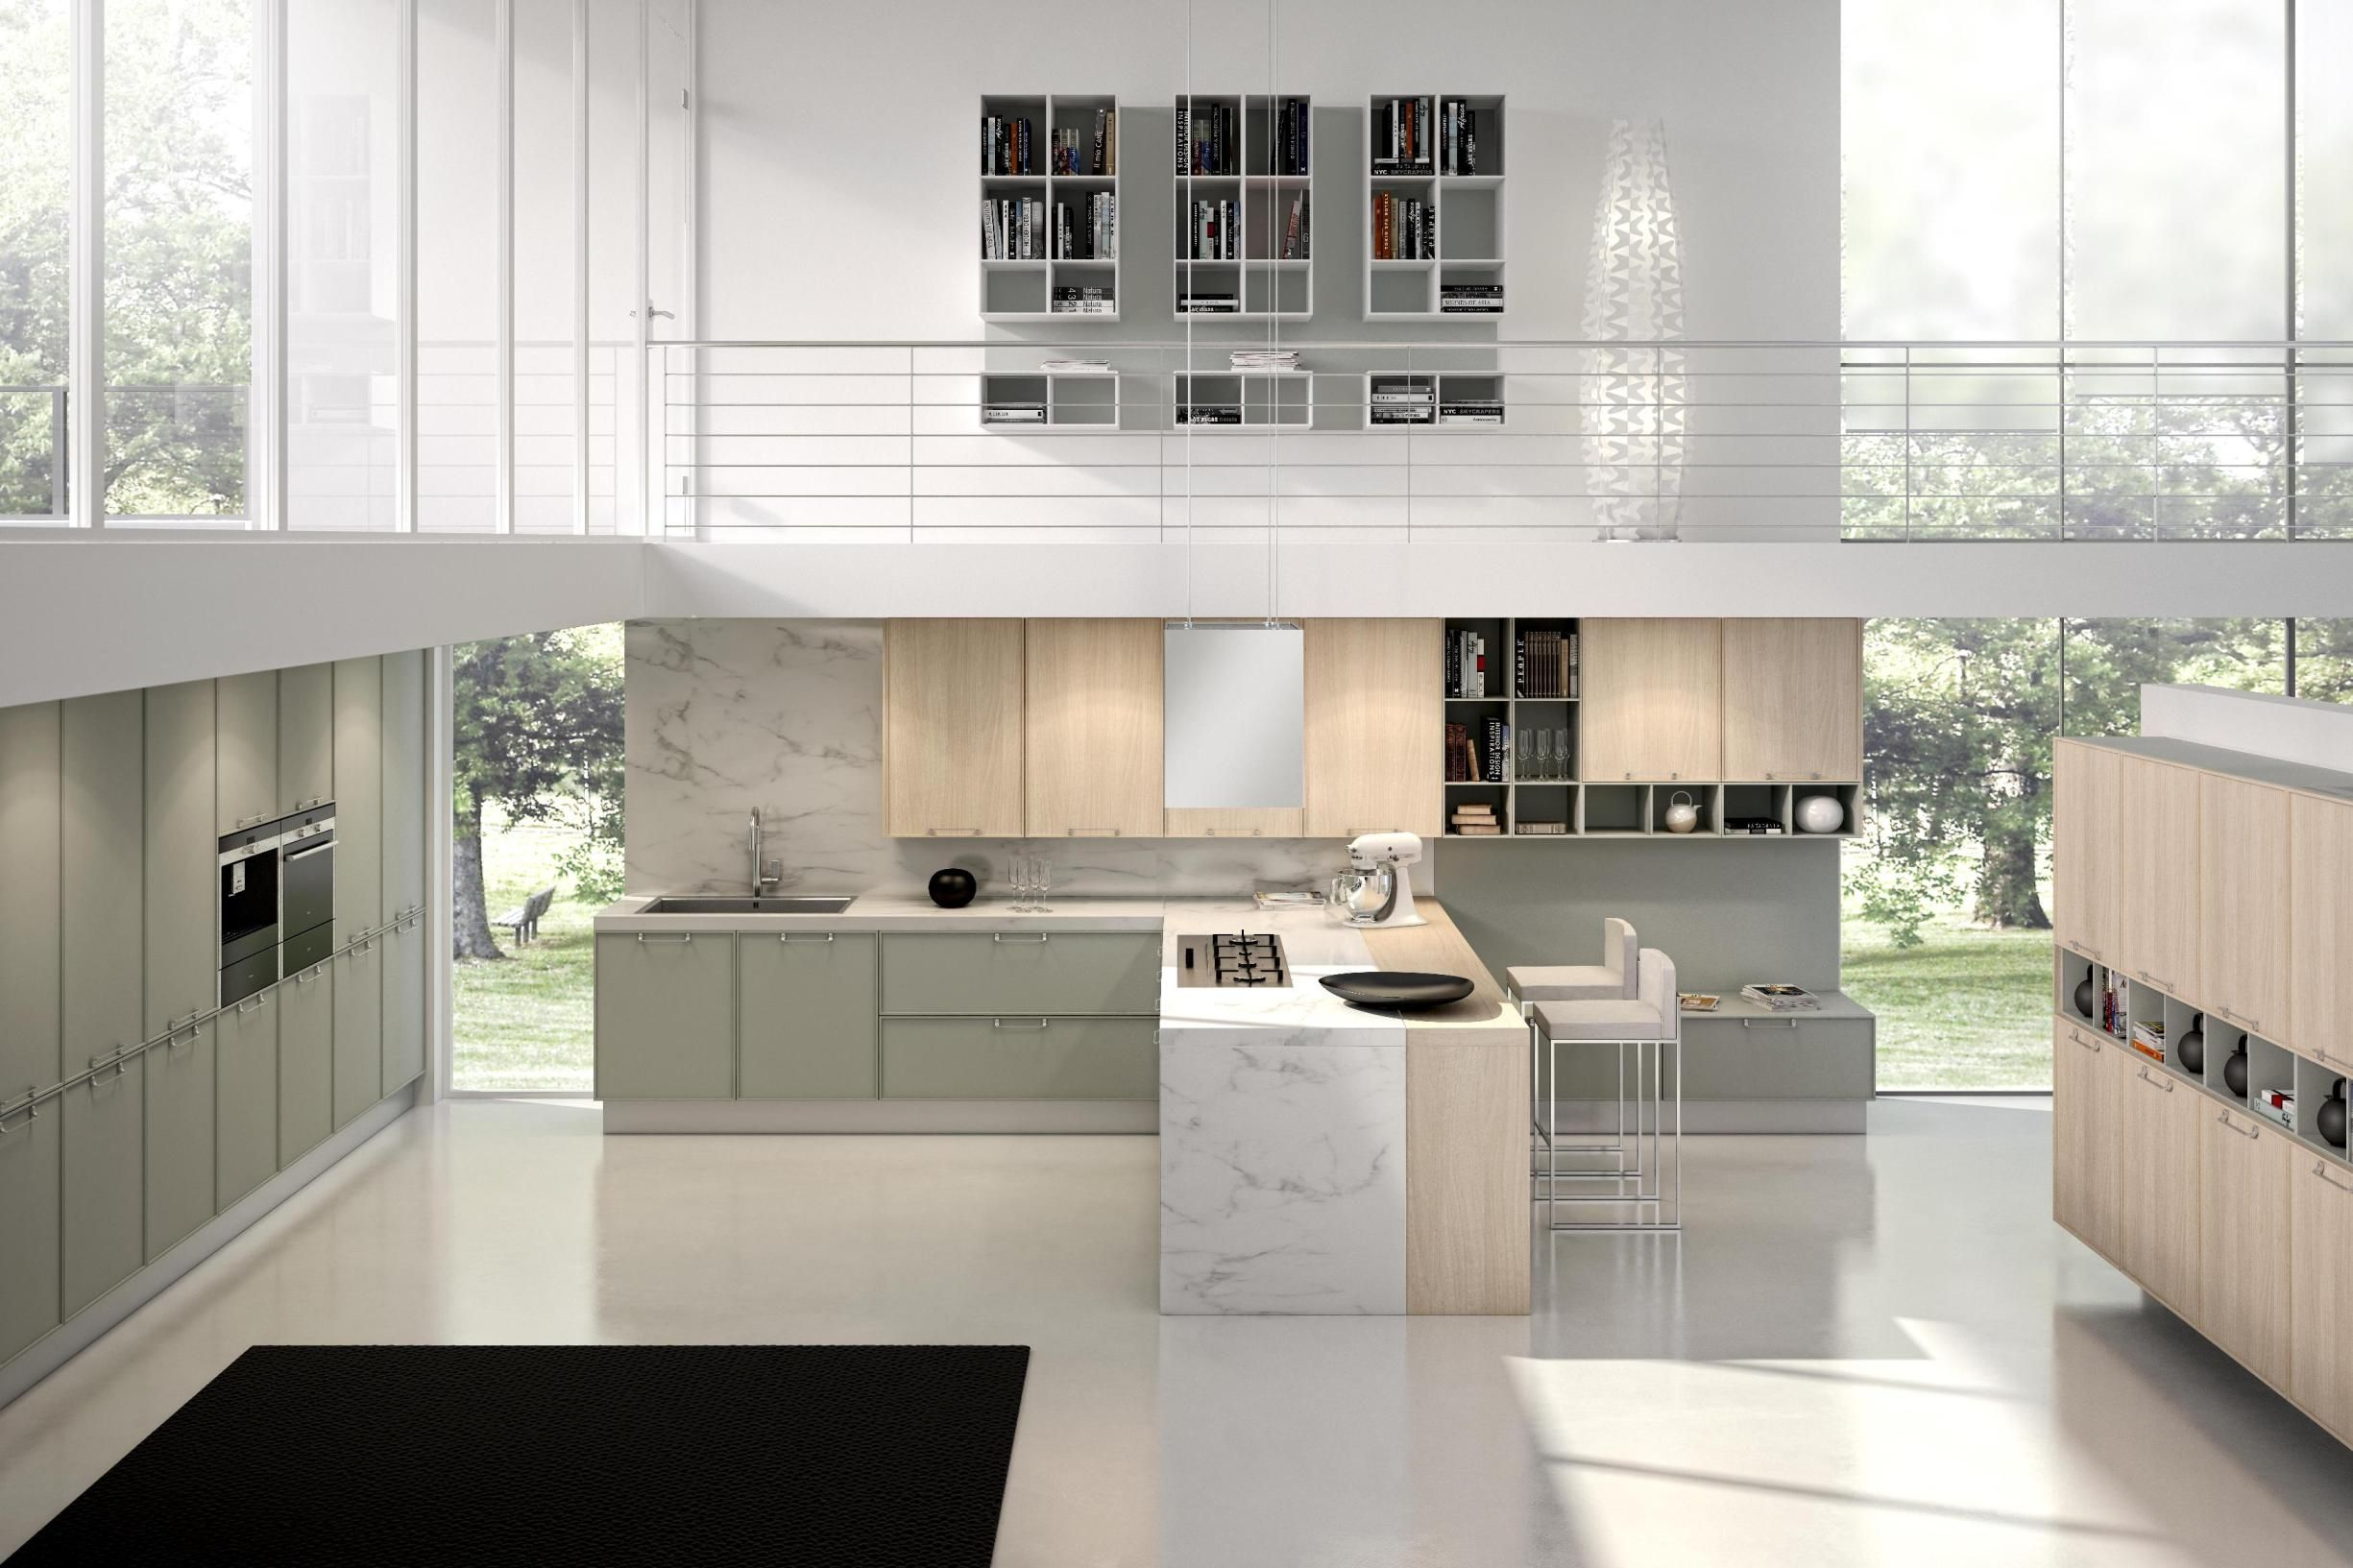 1000 images about kitchens on pinterest modern kitchen cabinets